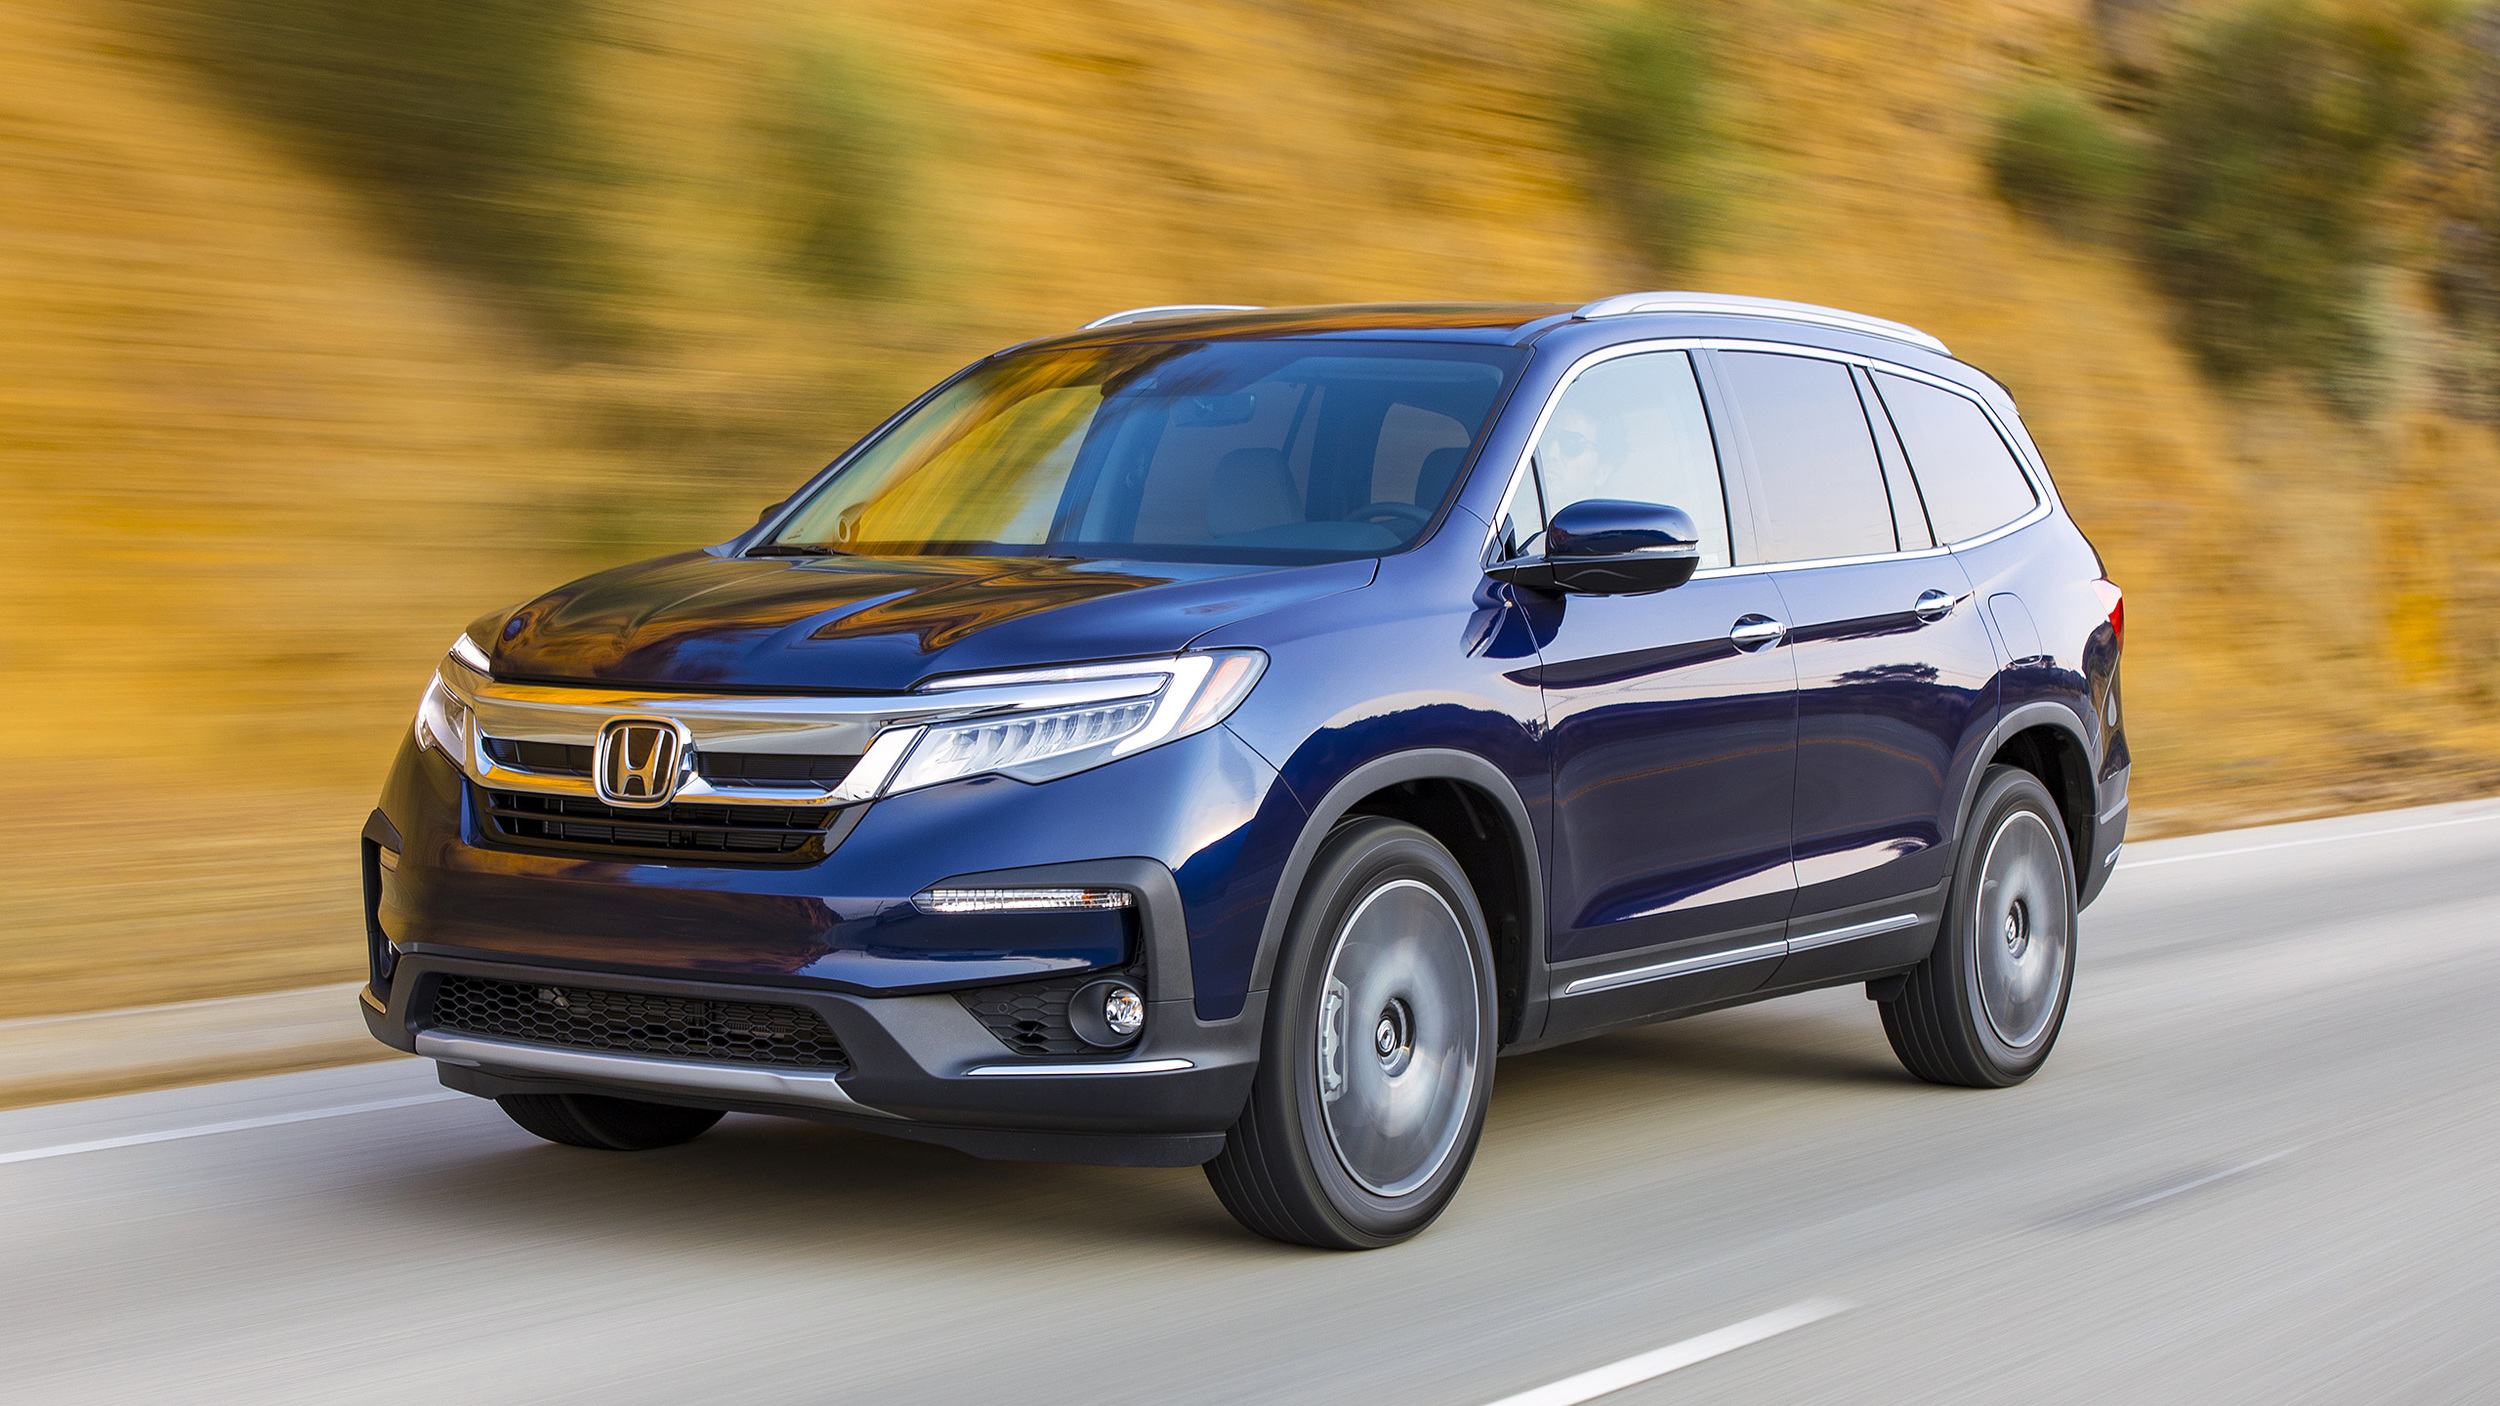 2018 Honda Pilot: Changes, Specs, Price >> 2019 Honda Pilot Crossover Suv Road Test Review And Impressions